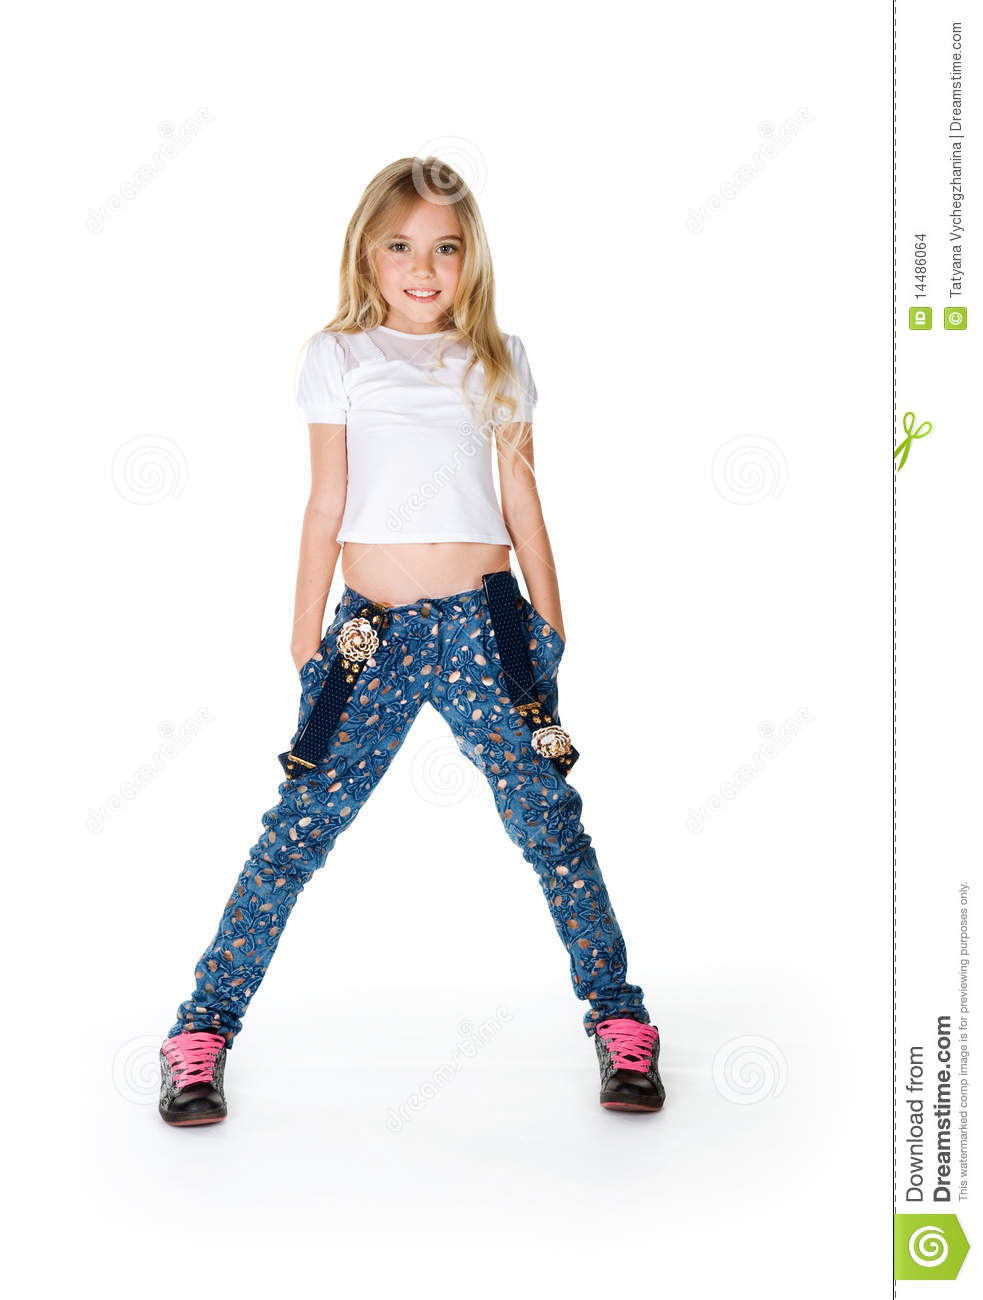 little girl model dreamstime little girl model dreamstime ...